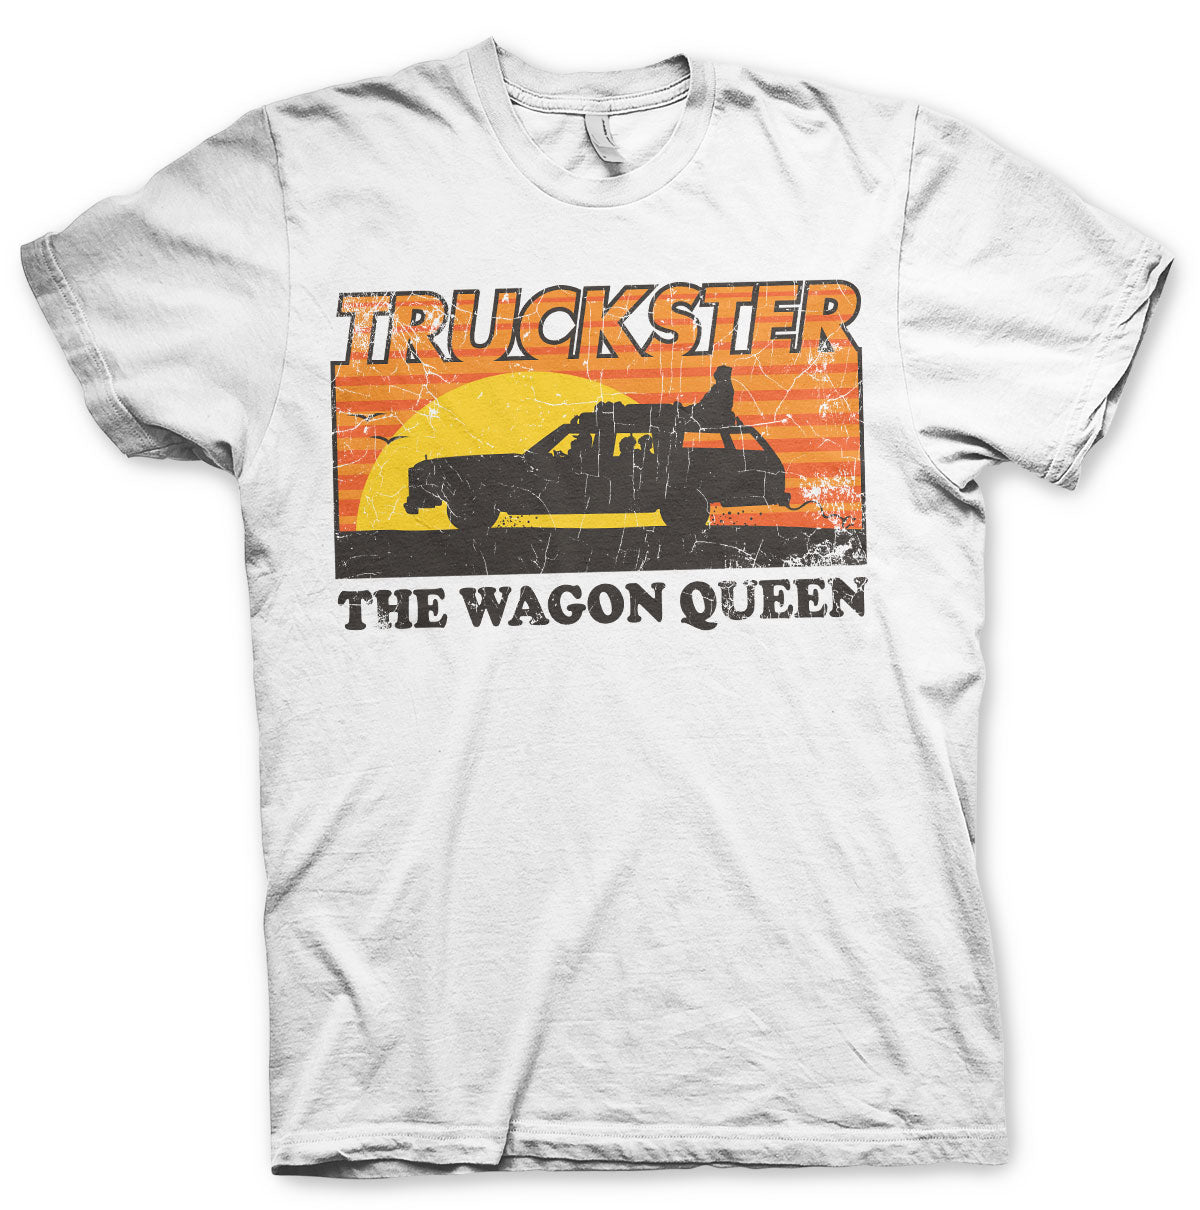 National Lampoon's Truckster The Wagon Queen T-Shirt White - Amhero